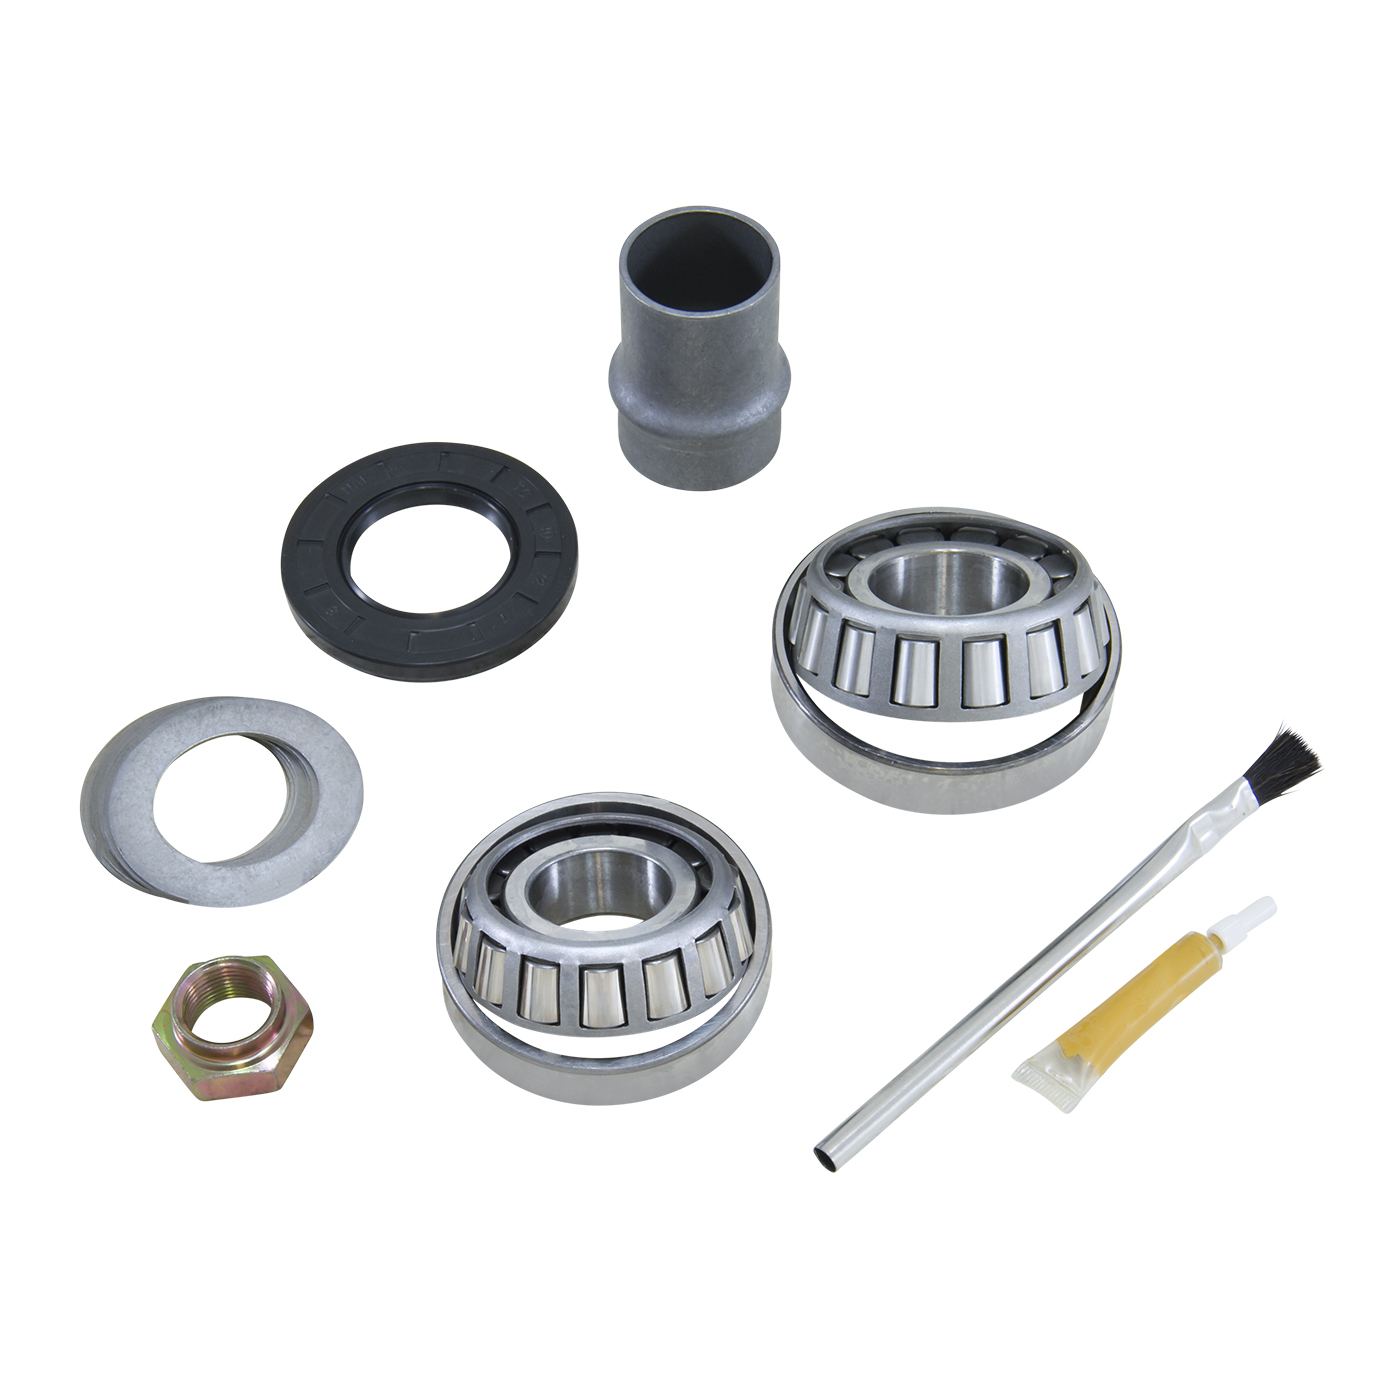 ZPKISAM - USA Standard Pinion installation kit for Suzuki Samurai